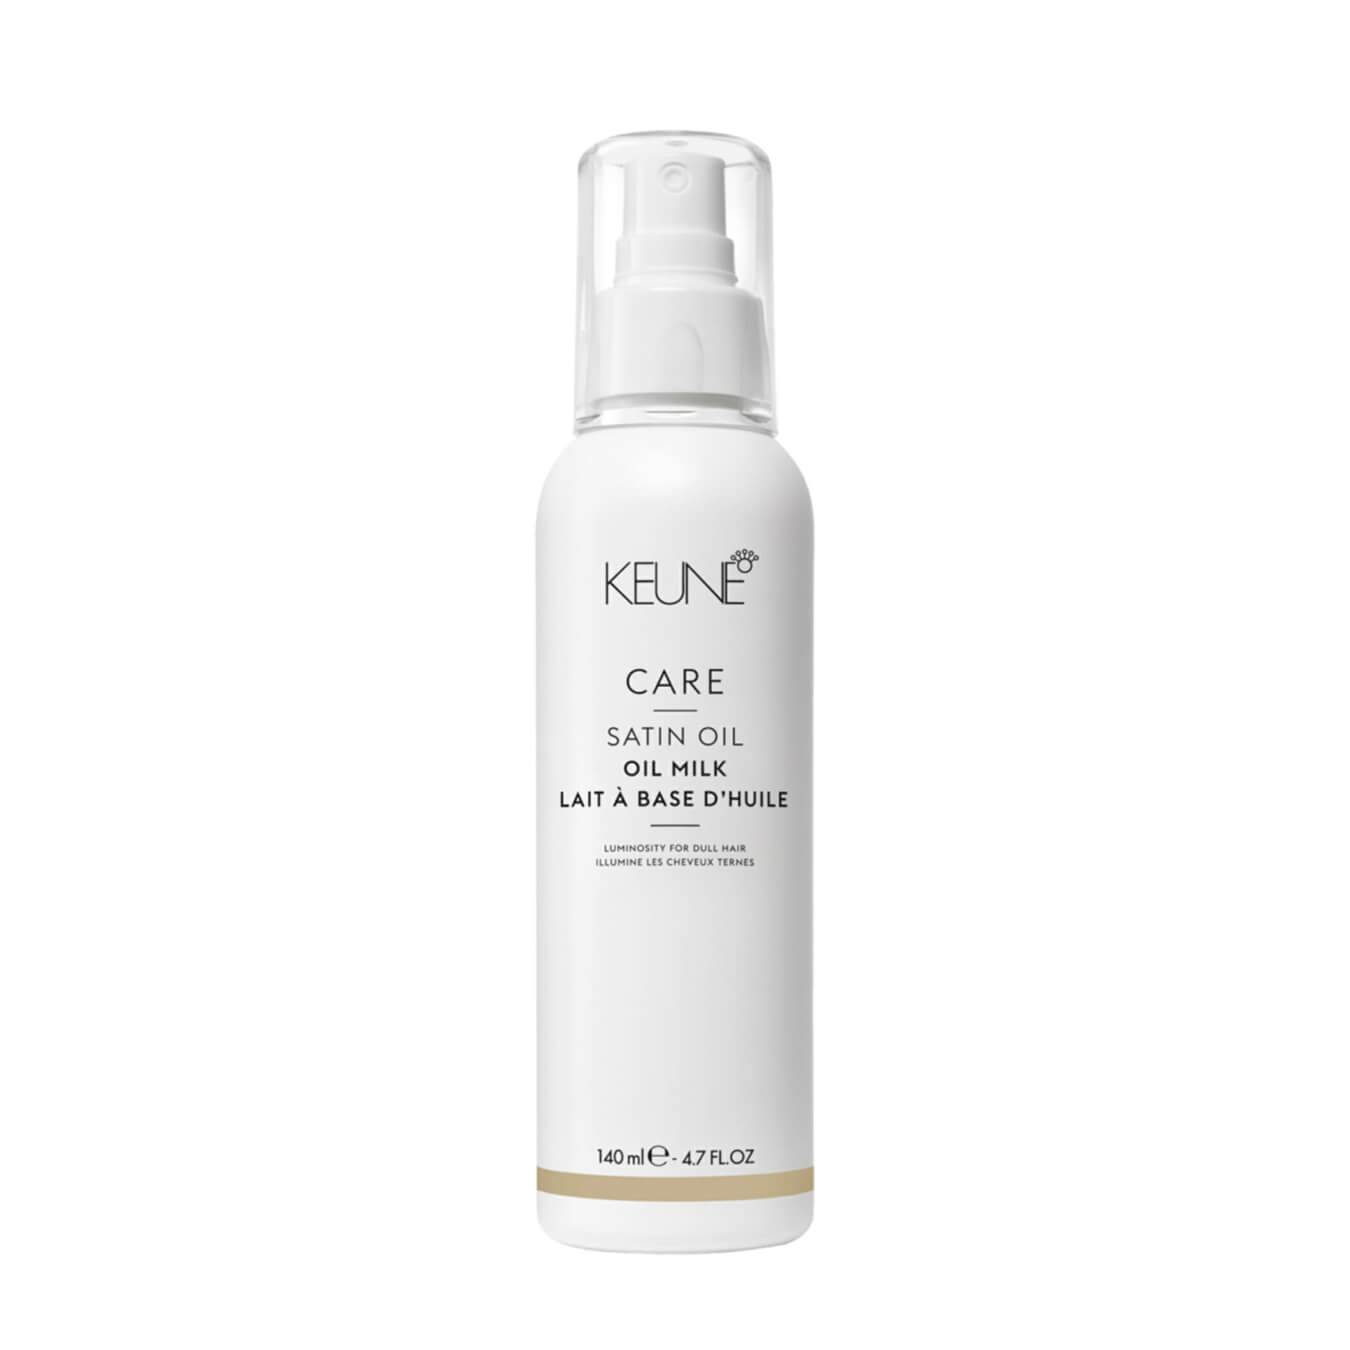 Kauf Keune Care Satin Oil Milk 140ml